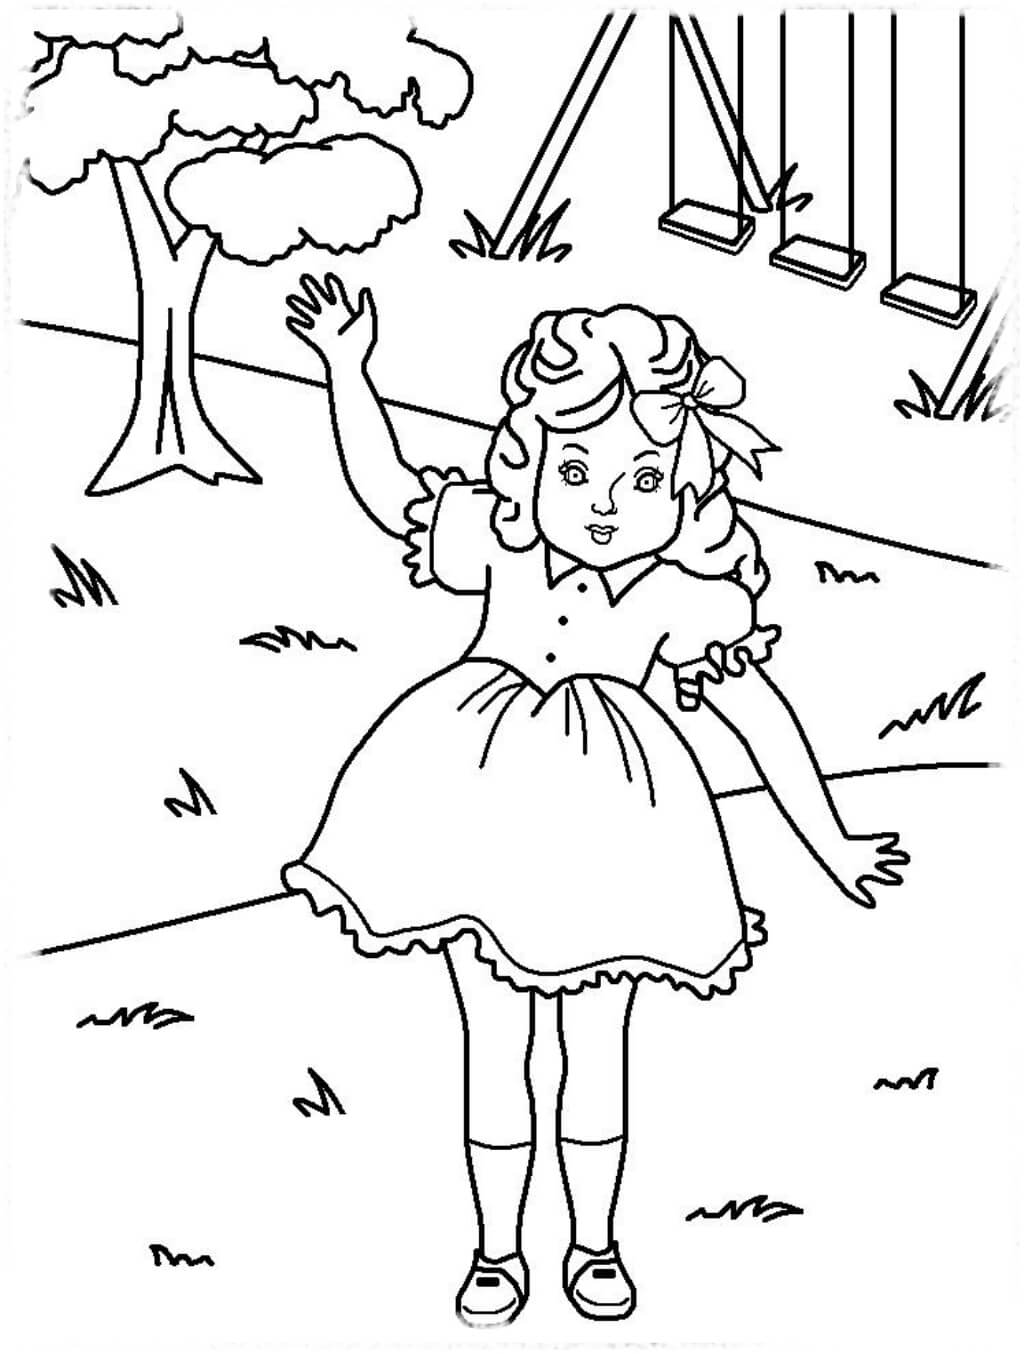 american girl coloring sheets american girl doll coloring pages educative printable coloring american girl sheets